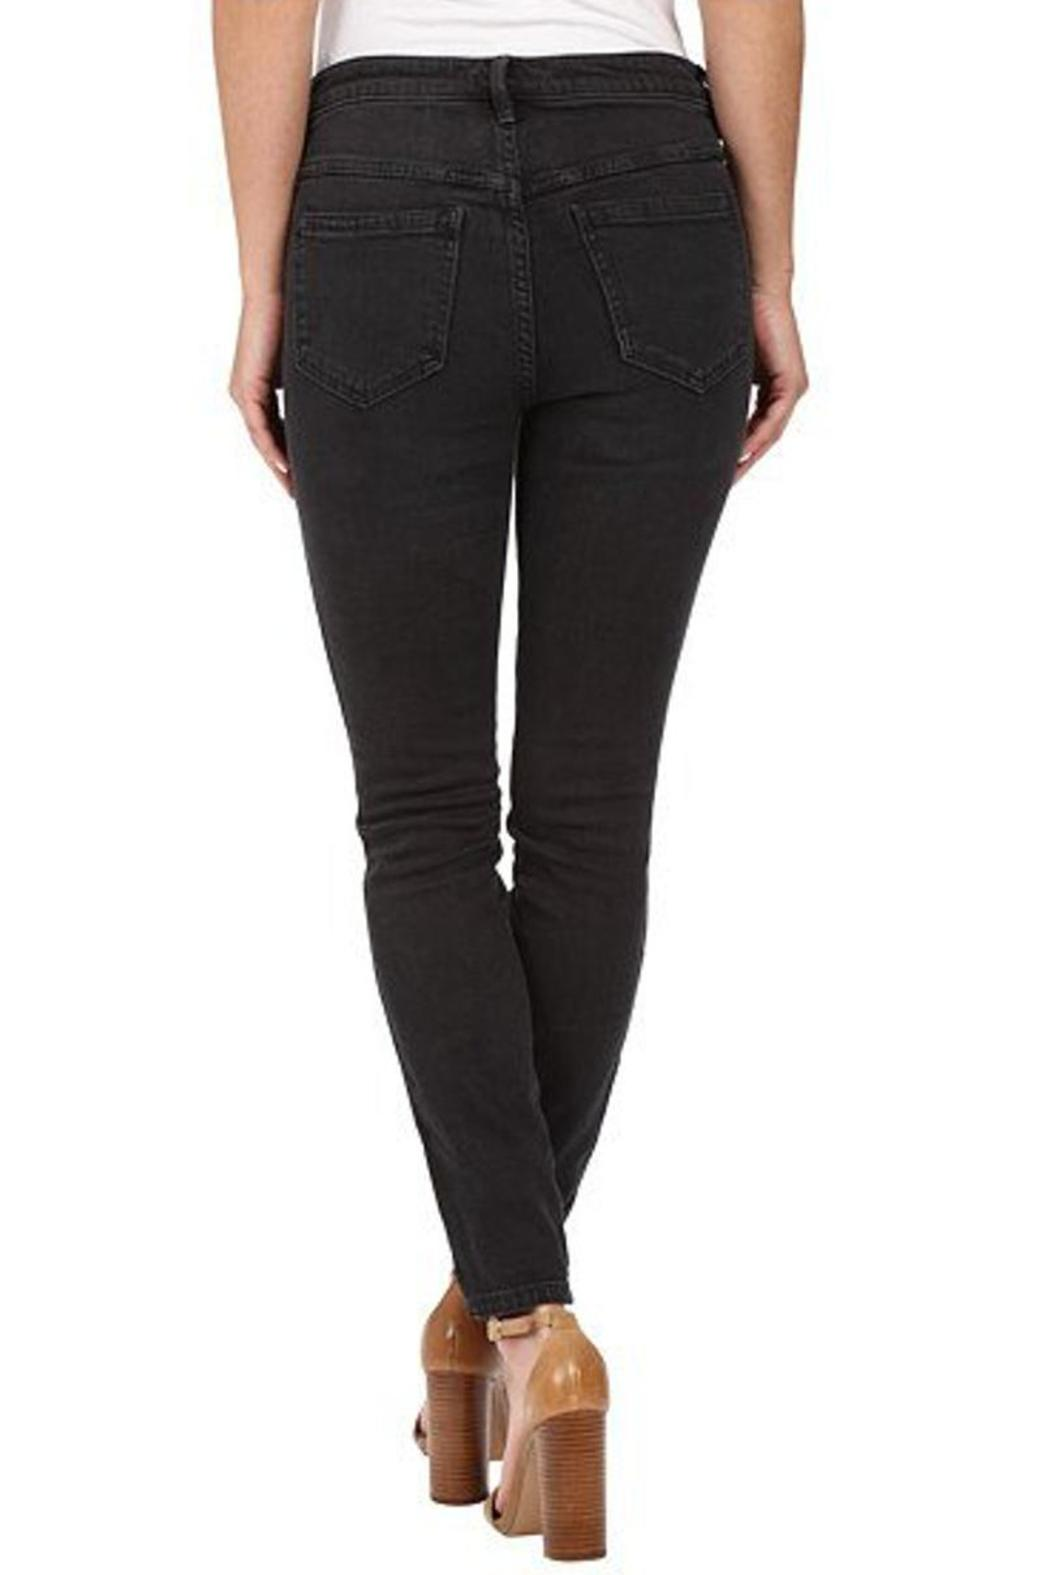 Free People Peyton High Rise Jeans - Back Cropped Image